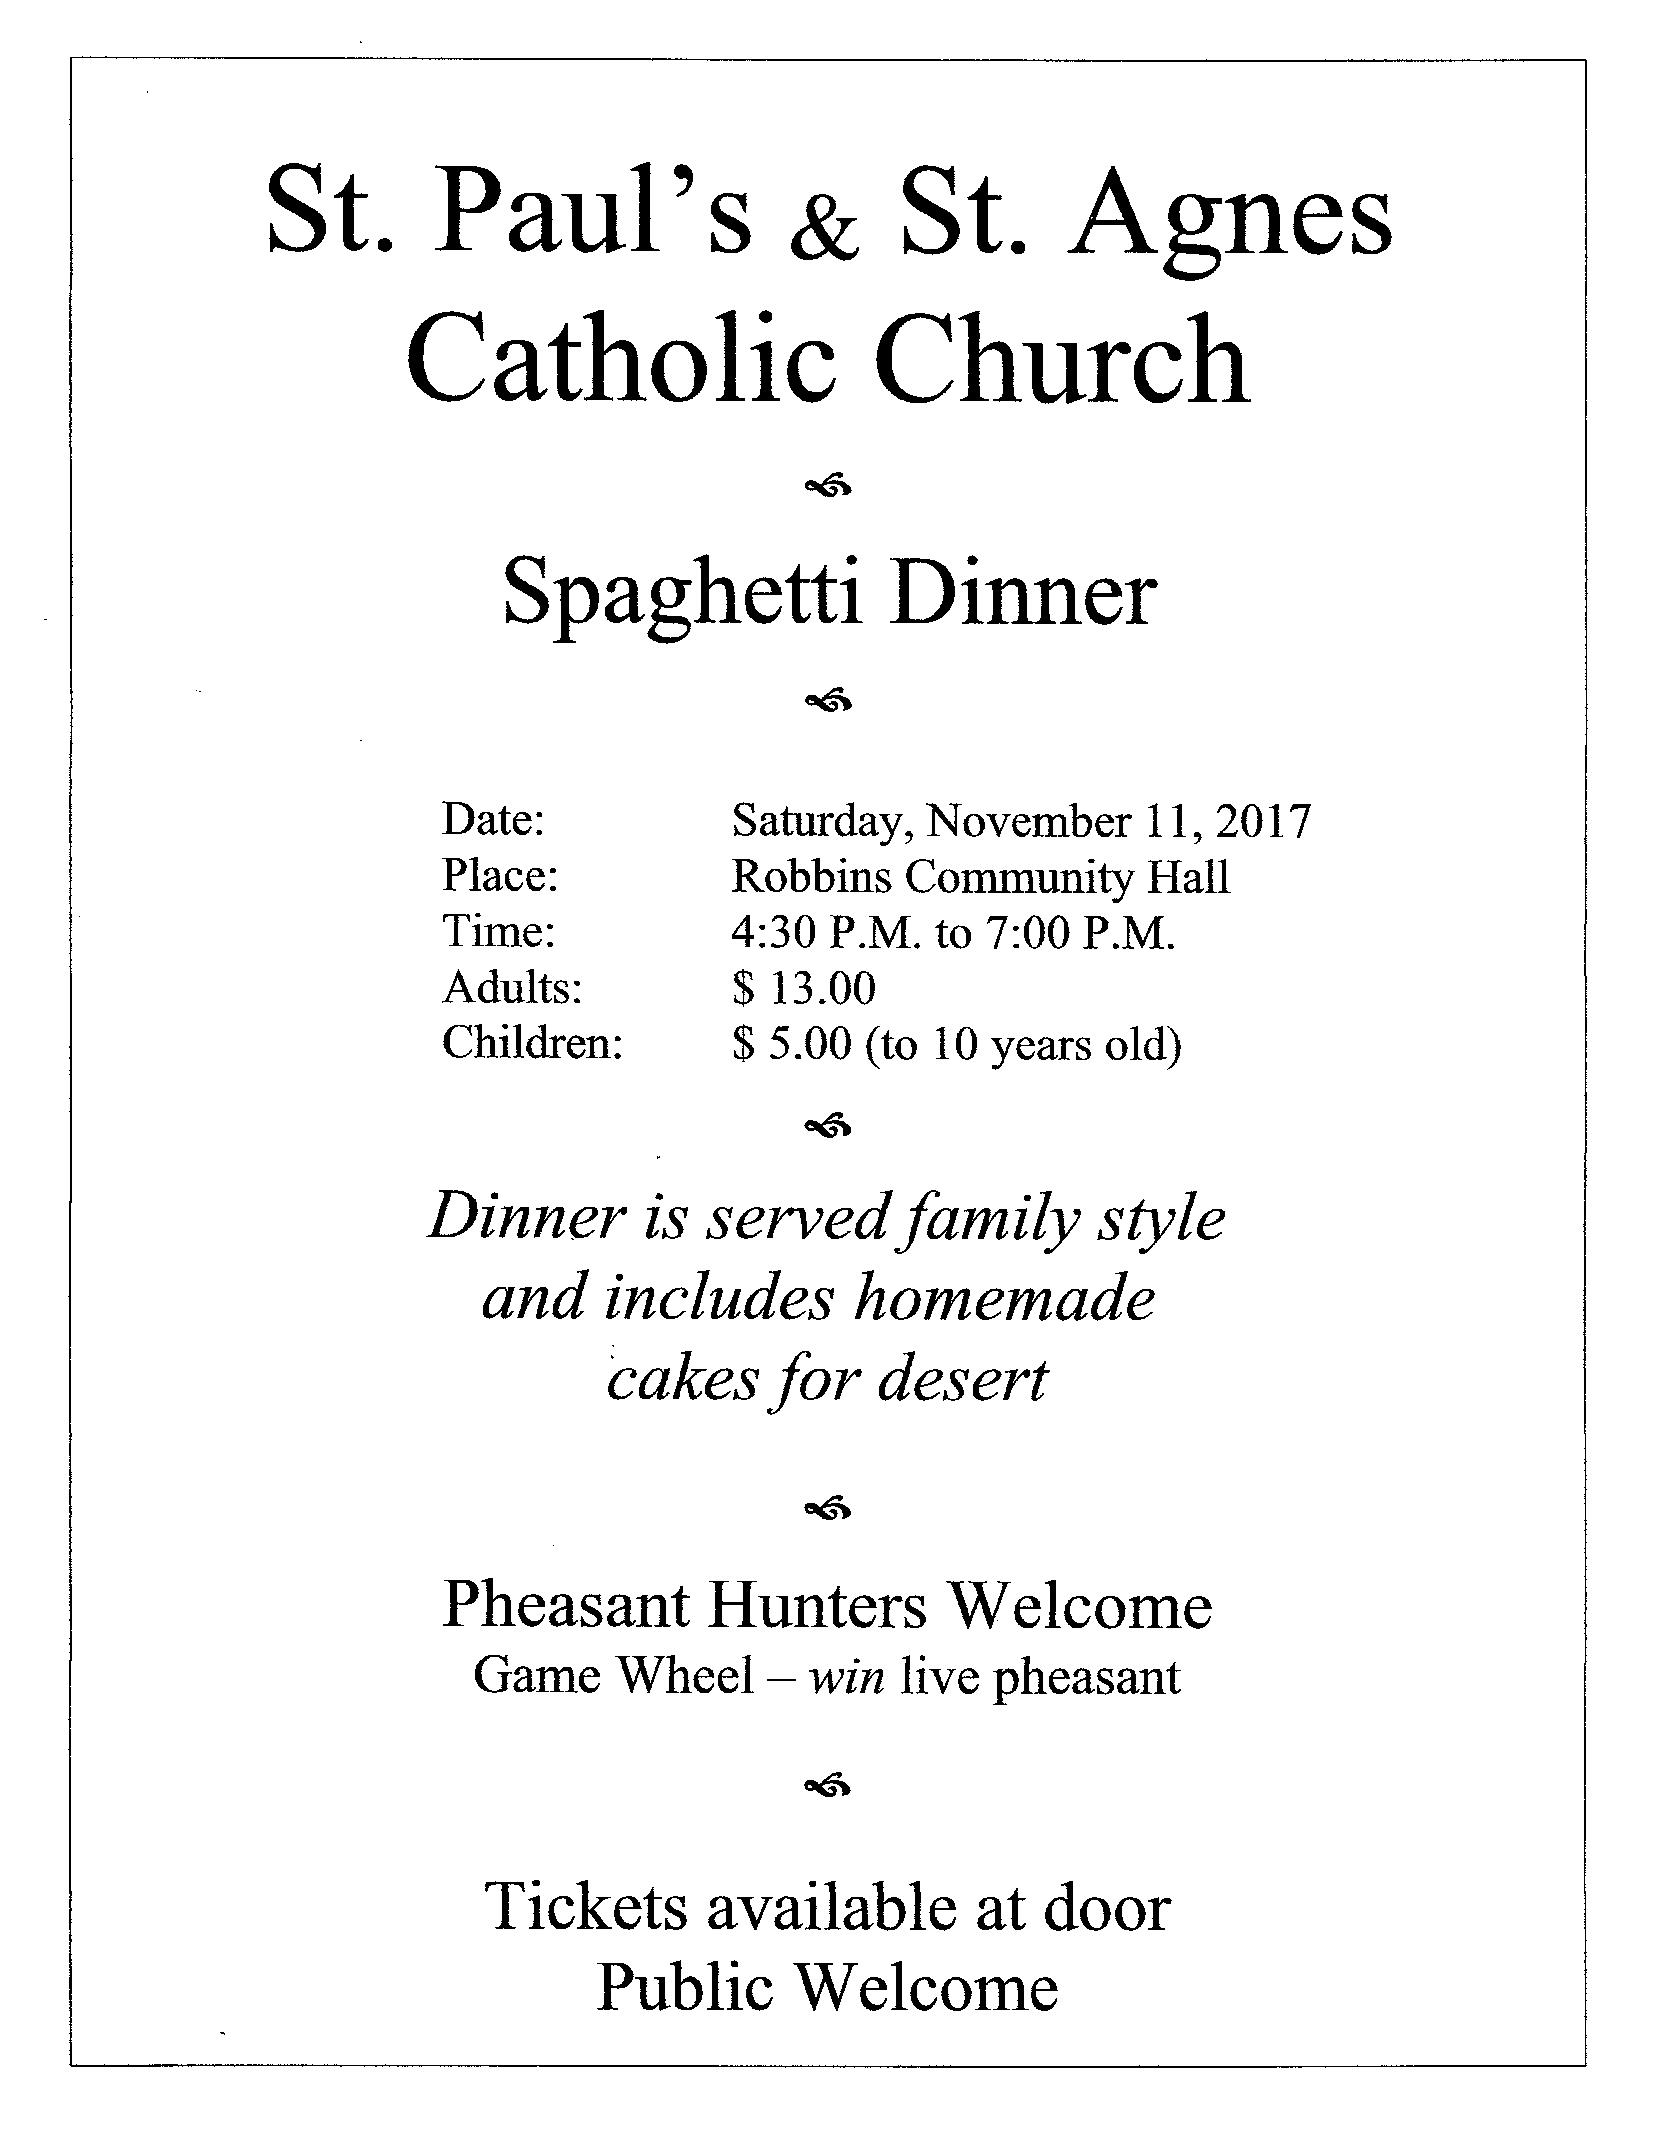 St. Paul's & St. Agnes Spaghetti Dinner November 11, 2017